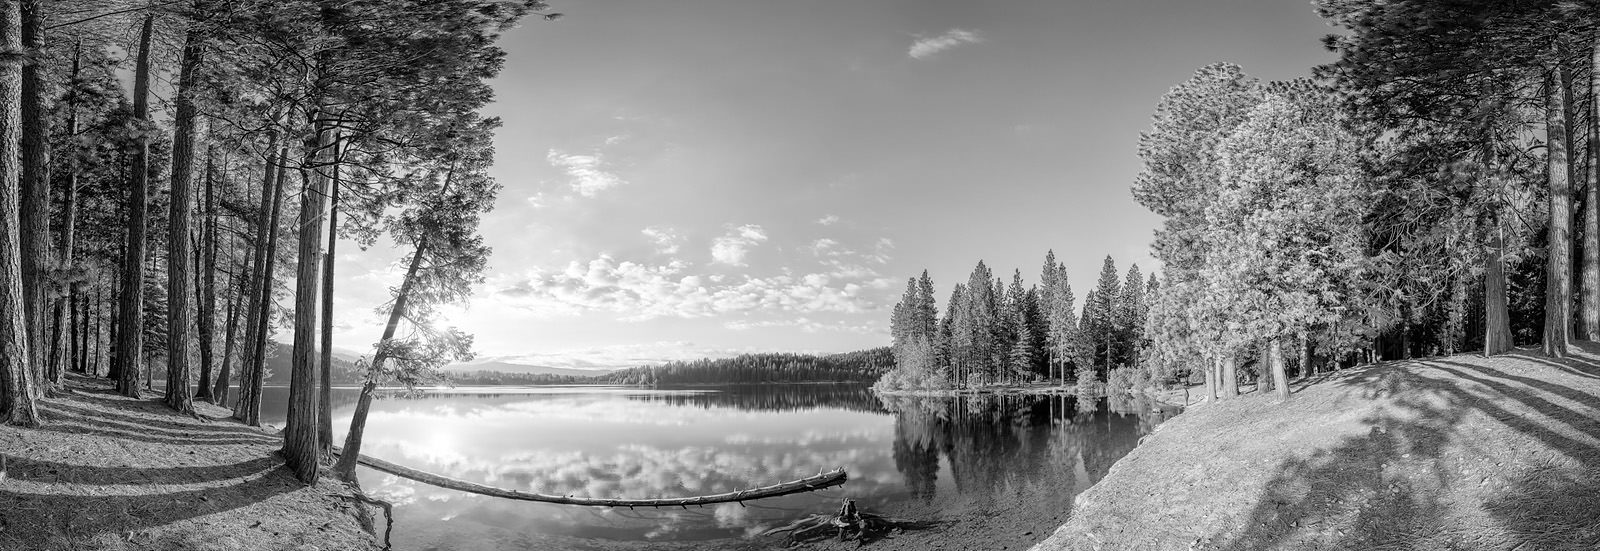 Lake Siskiyou Acrylic - California black and white Fine Art Print